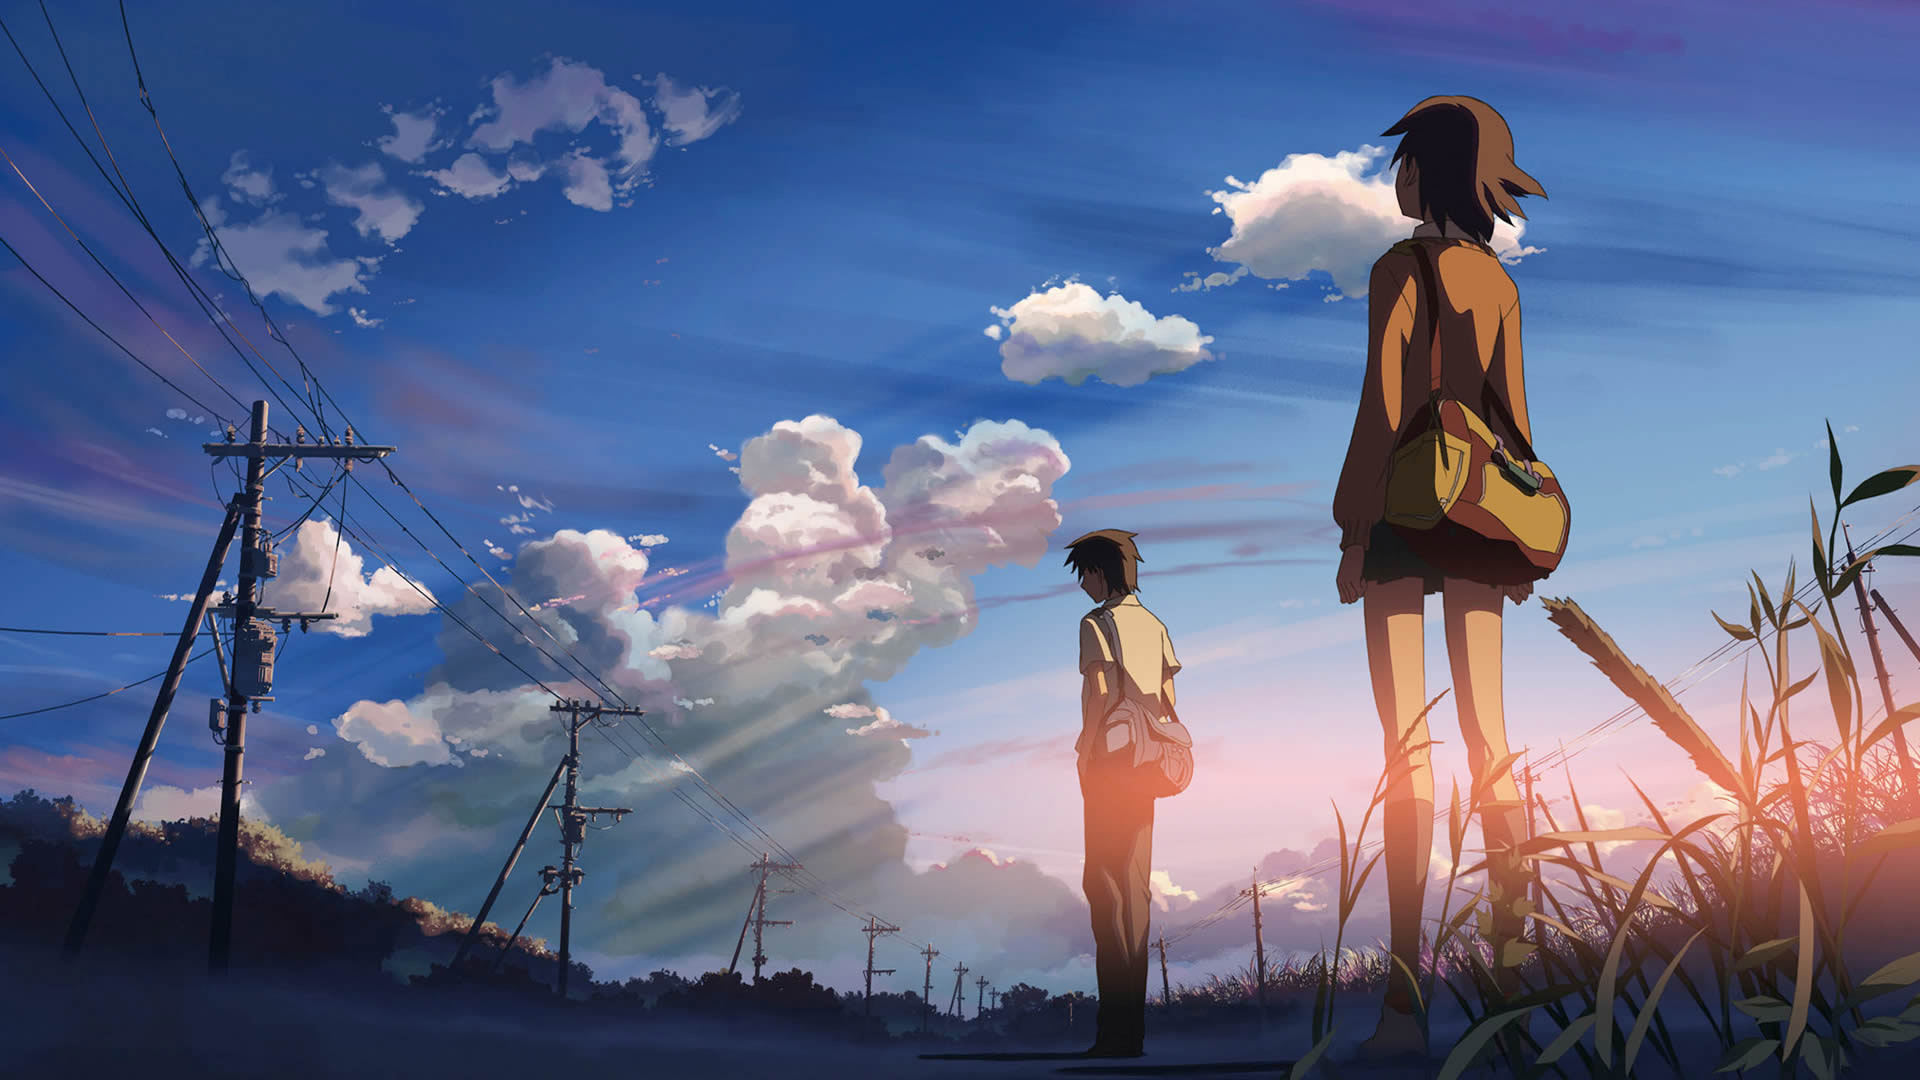 X Anime X Free Wallpapers For Laptops Free Wallpaper Download A  Anime Wallpapers For